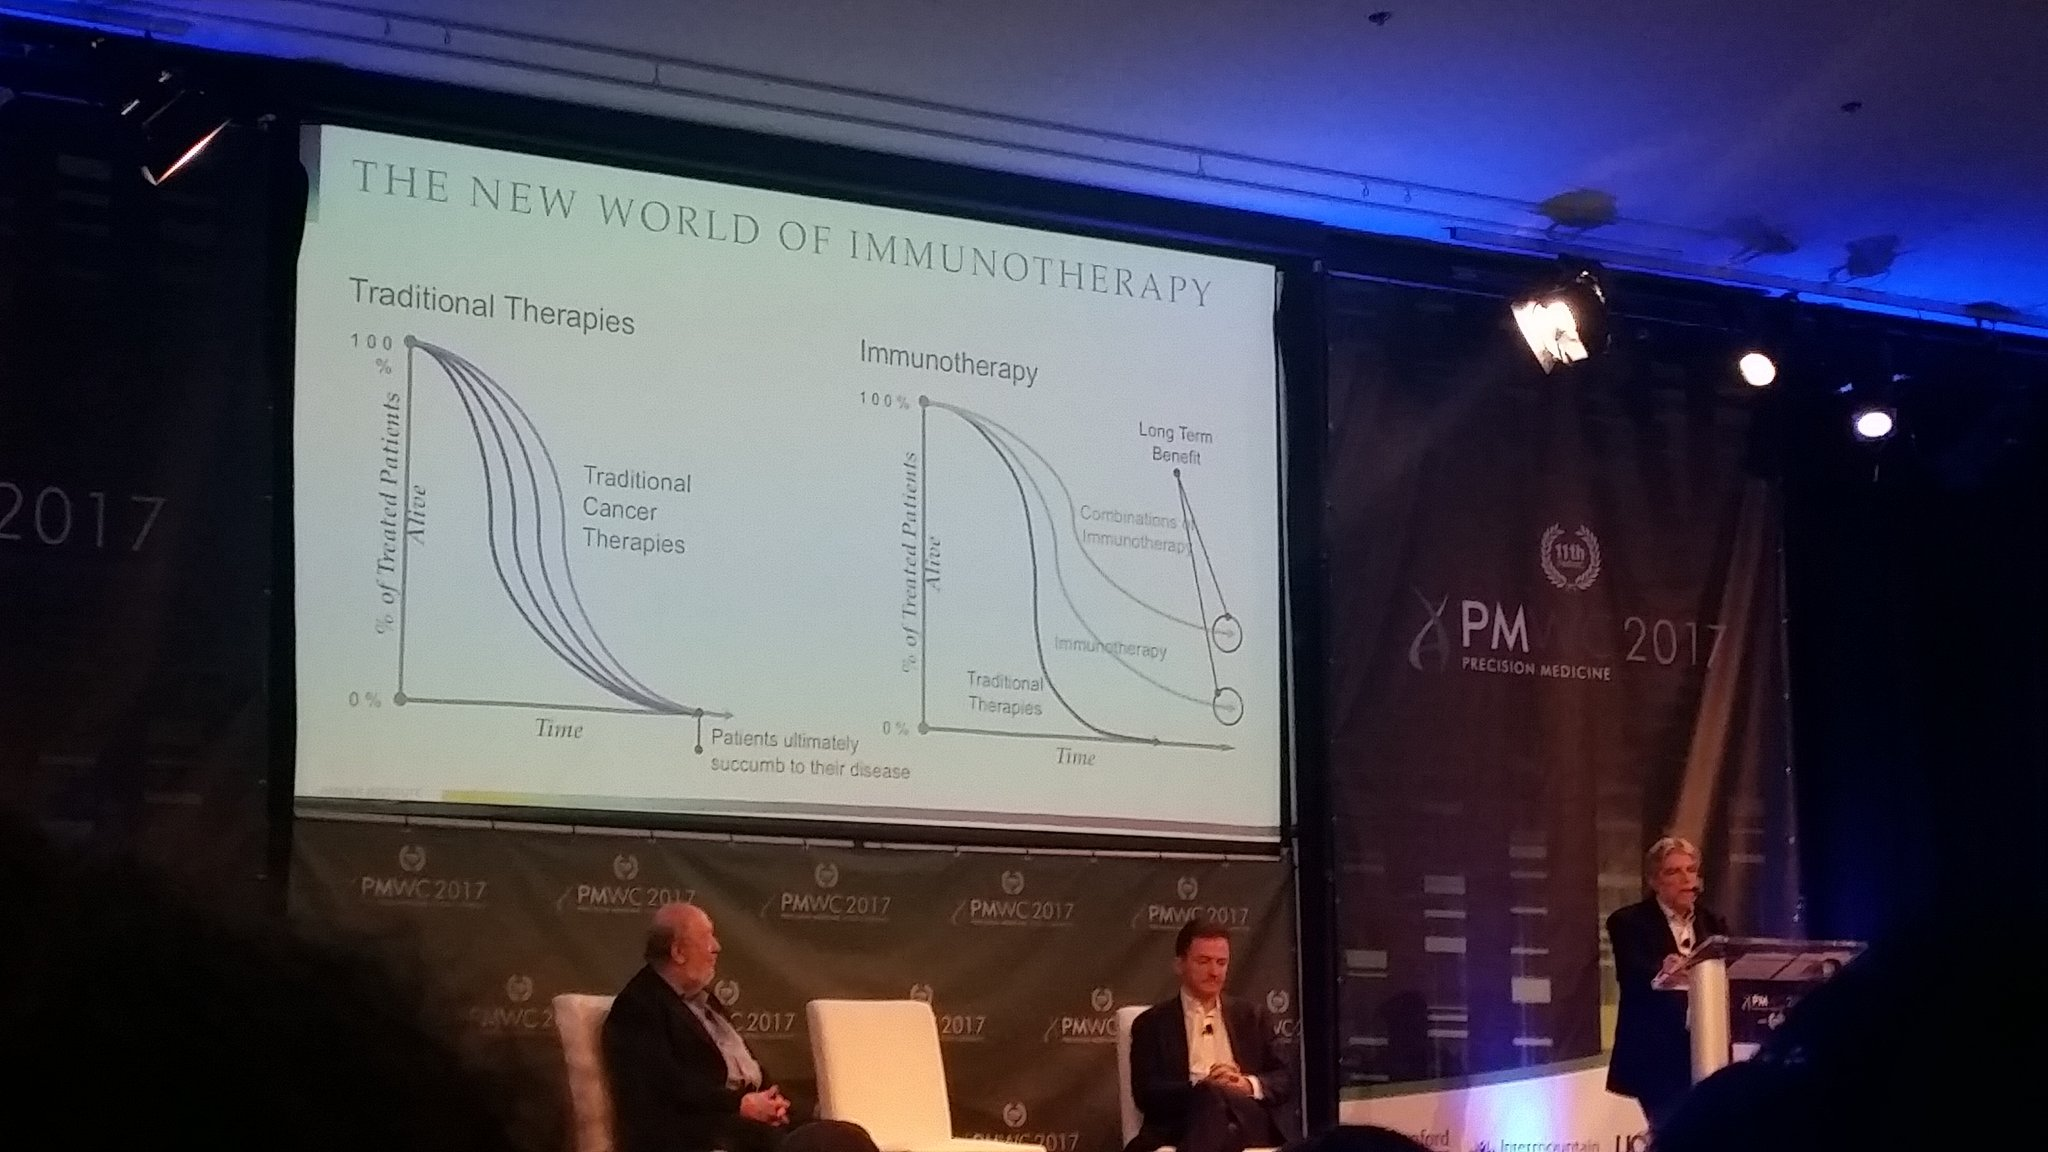 The difference #immunotherapy makes in cancer treatment and how to advance it by dr. Jeffrey Bluestone (Parker Institute) #PMWC17 https://t.co/zOZm6GJyys